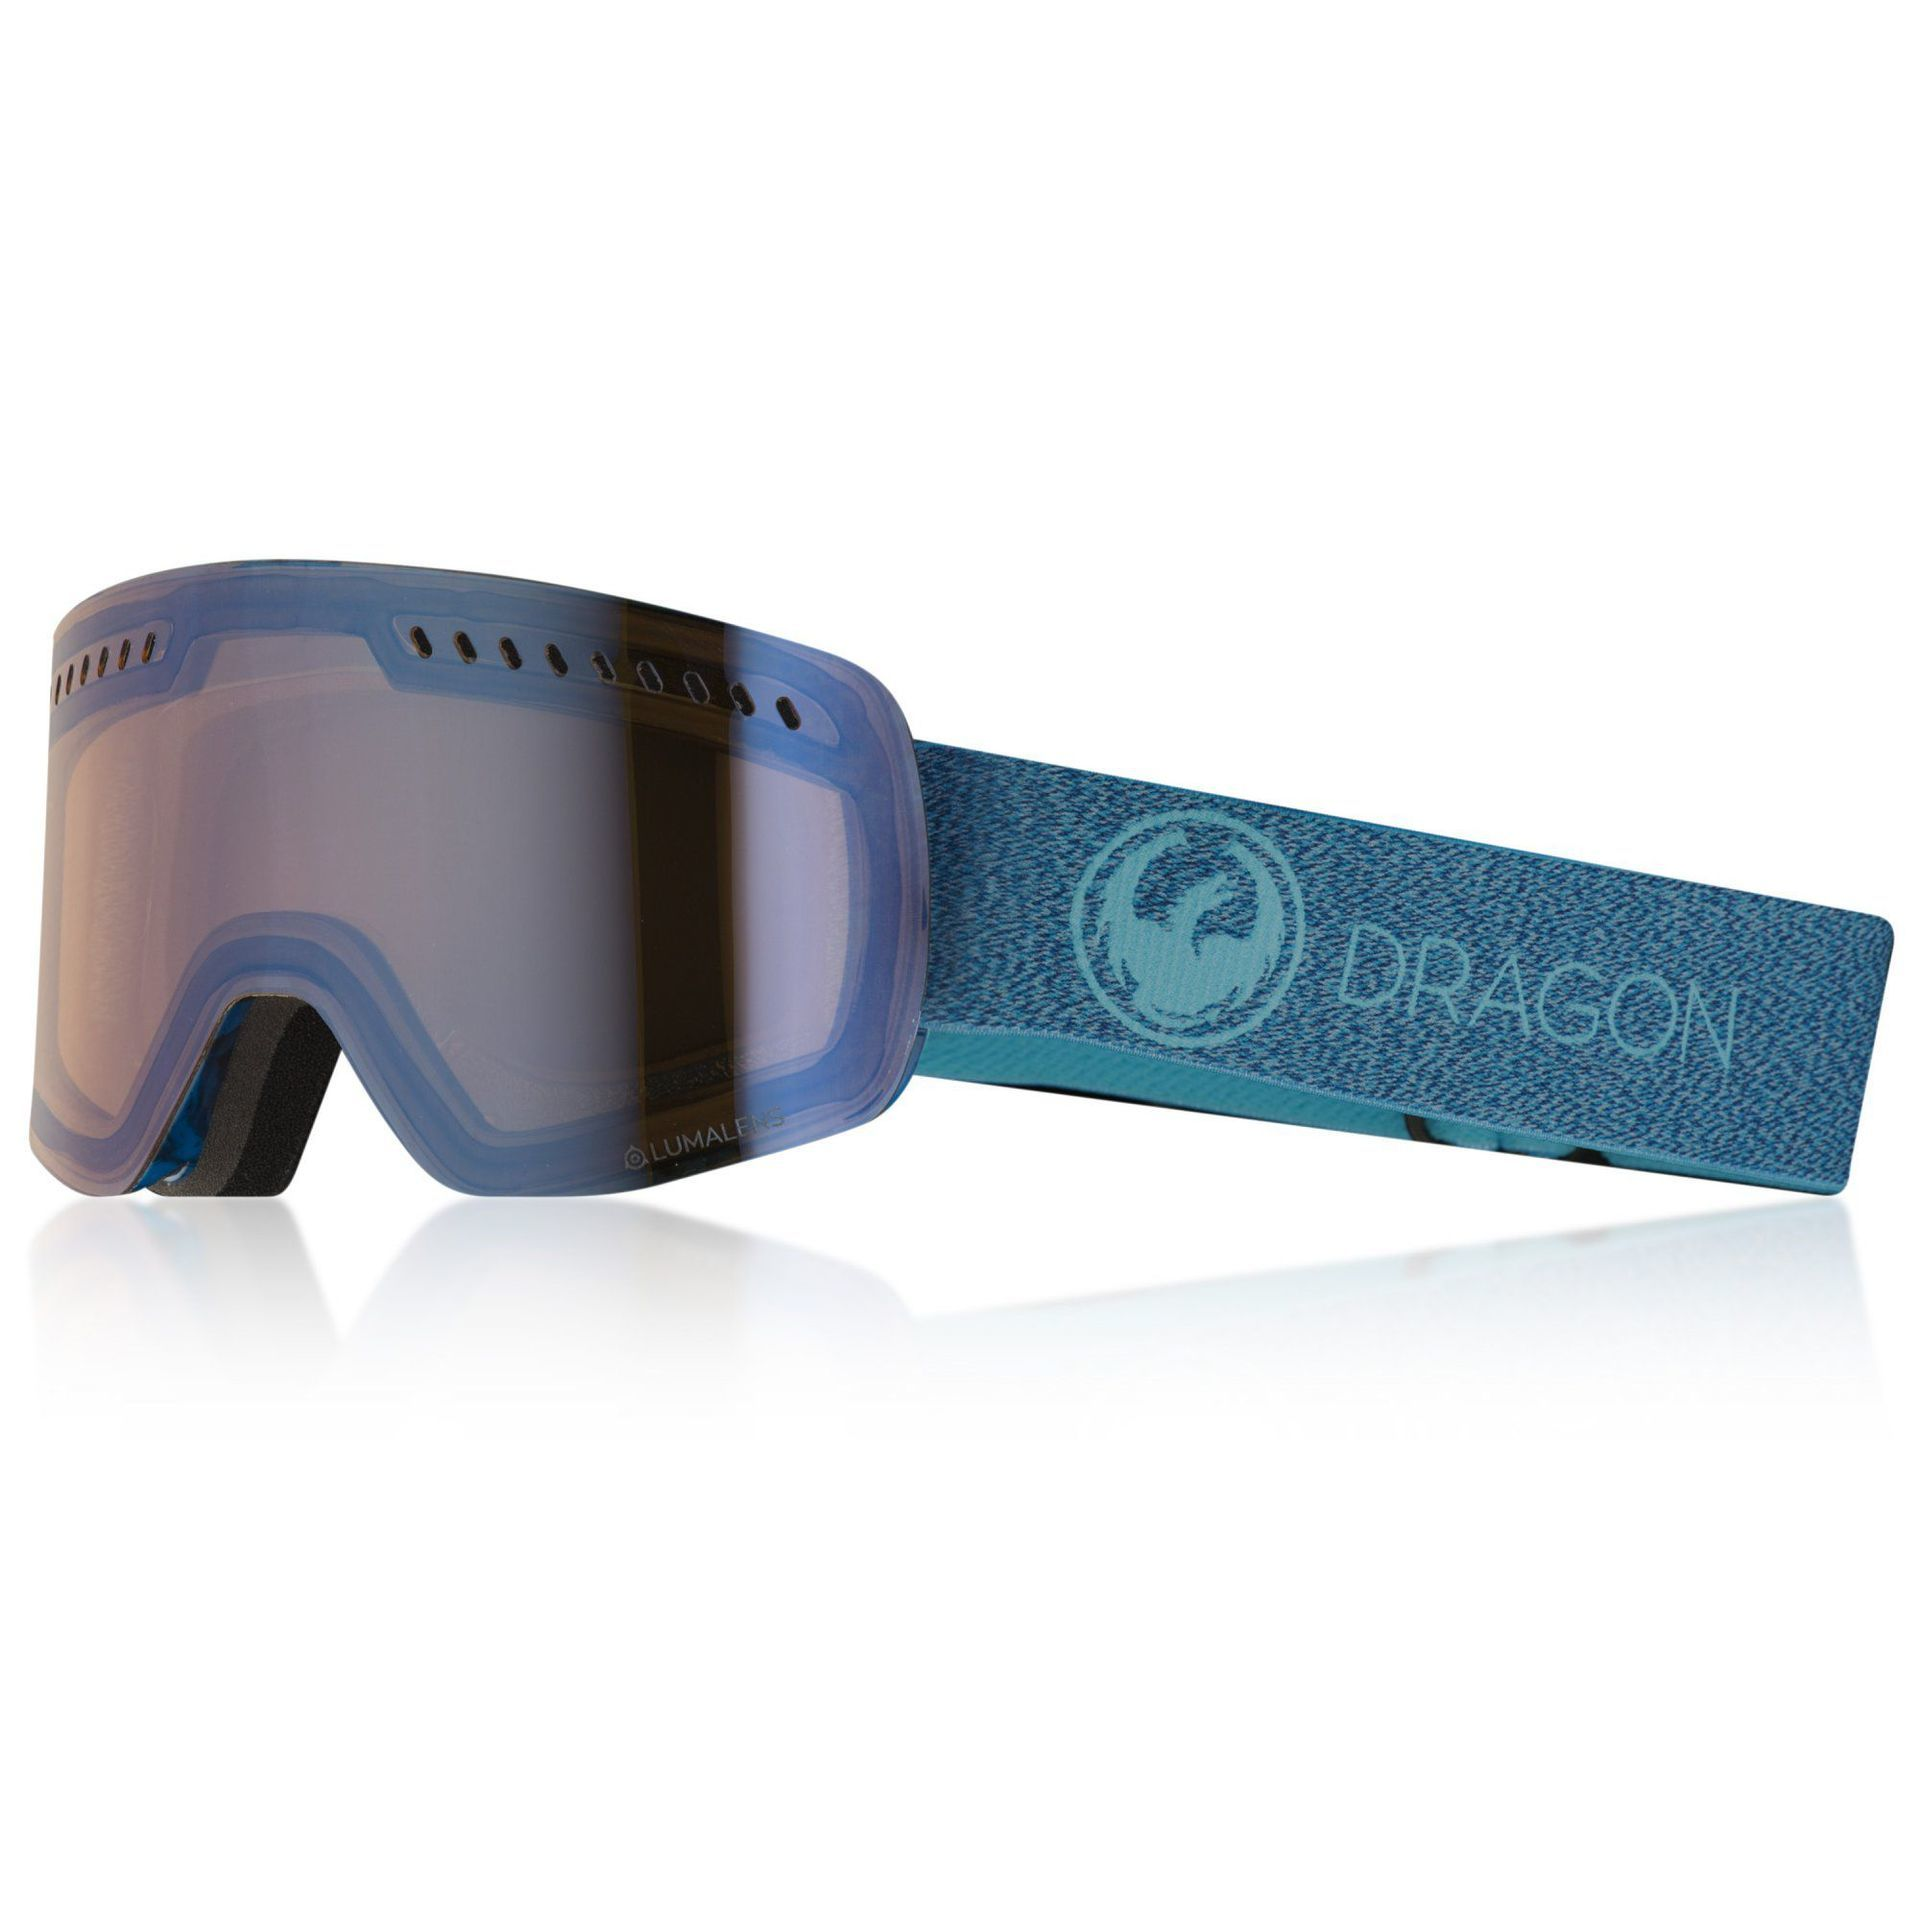 GOGLE DRAGON NFXS MILL|FLASH BLUE